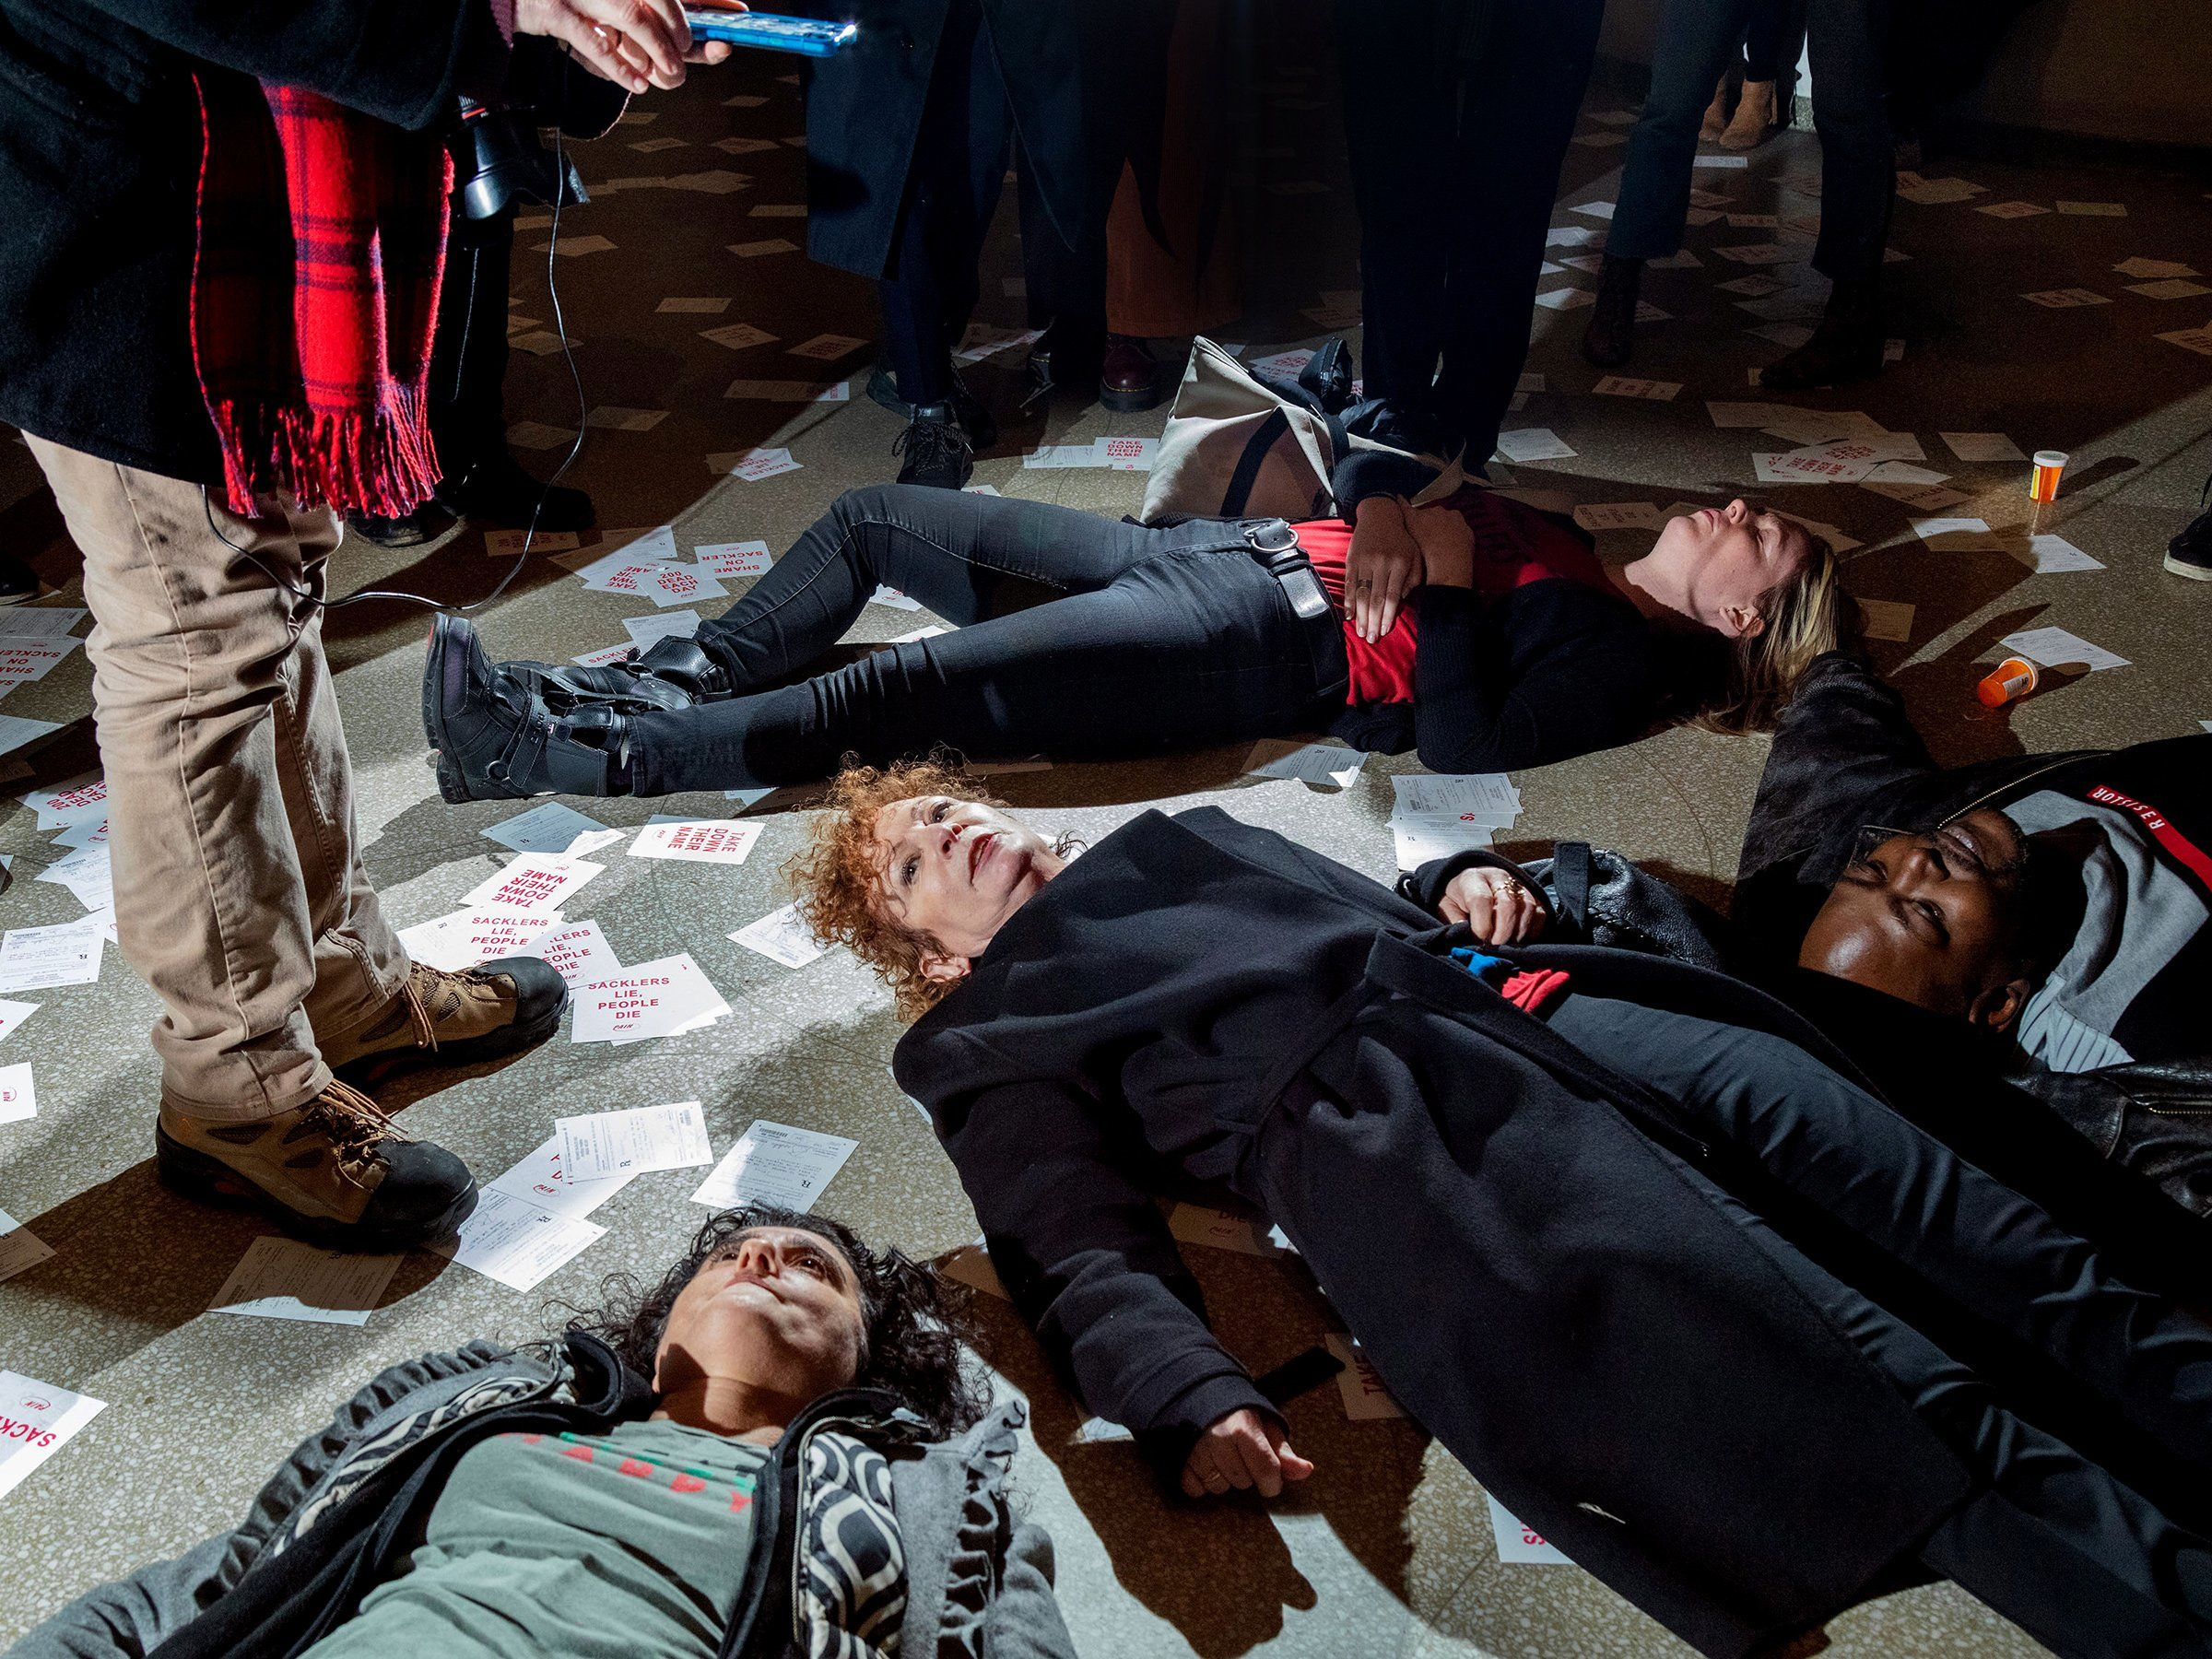 Nan Goldin leads a die-in demonstration against the Sackler family at the Guggenheim Museum in New York in February.